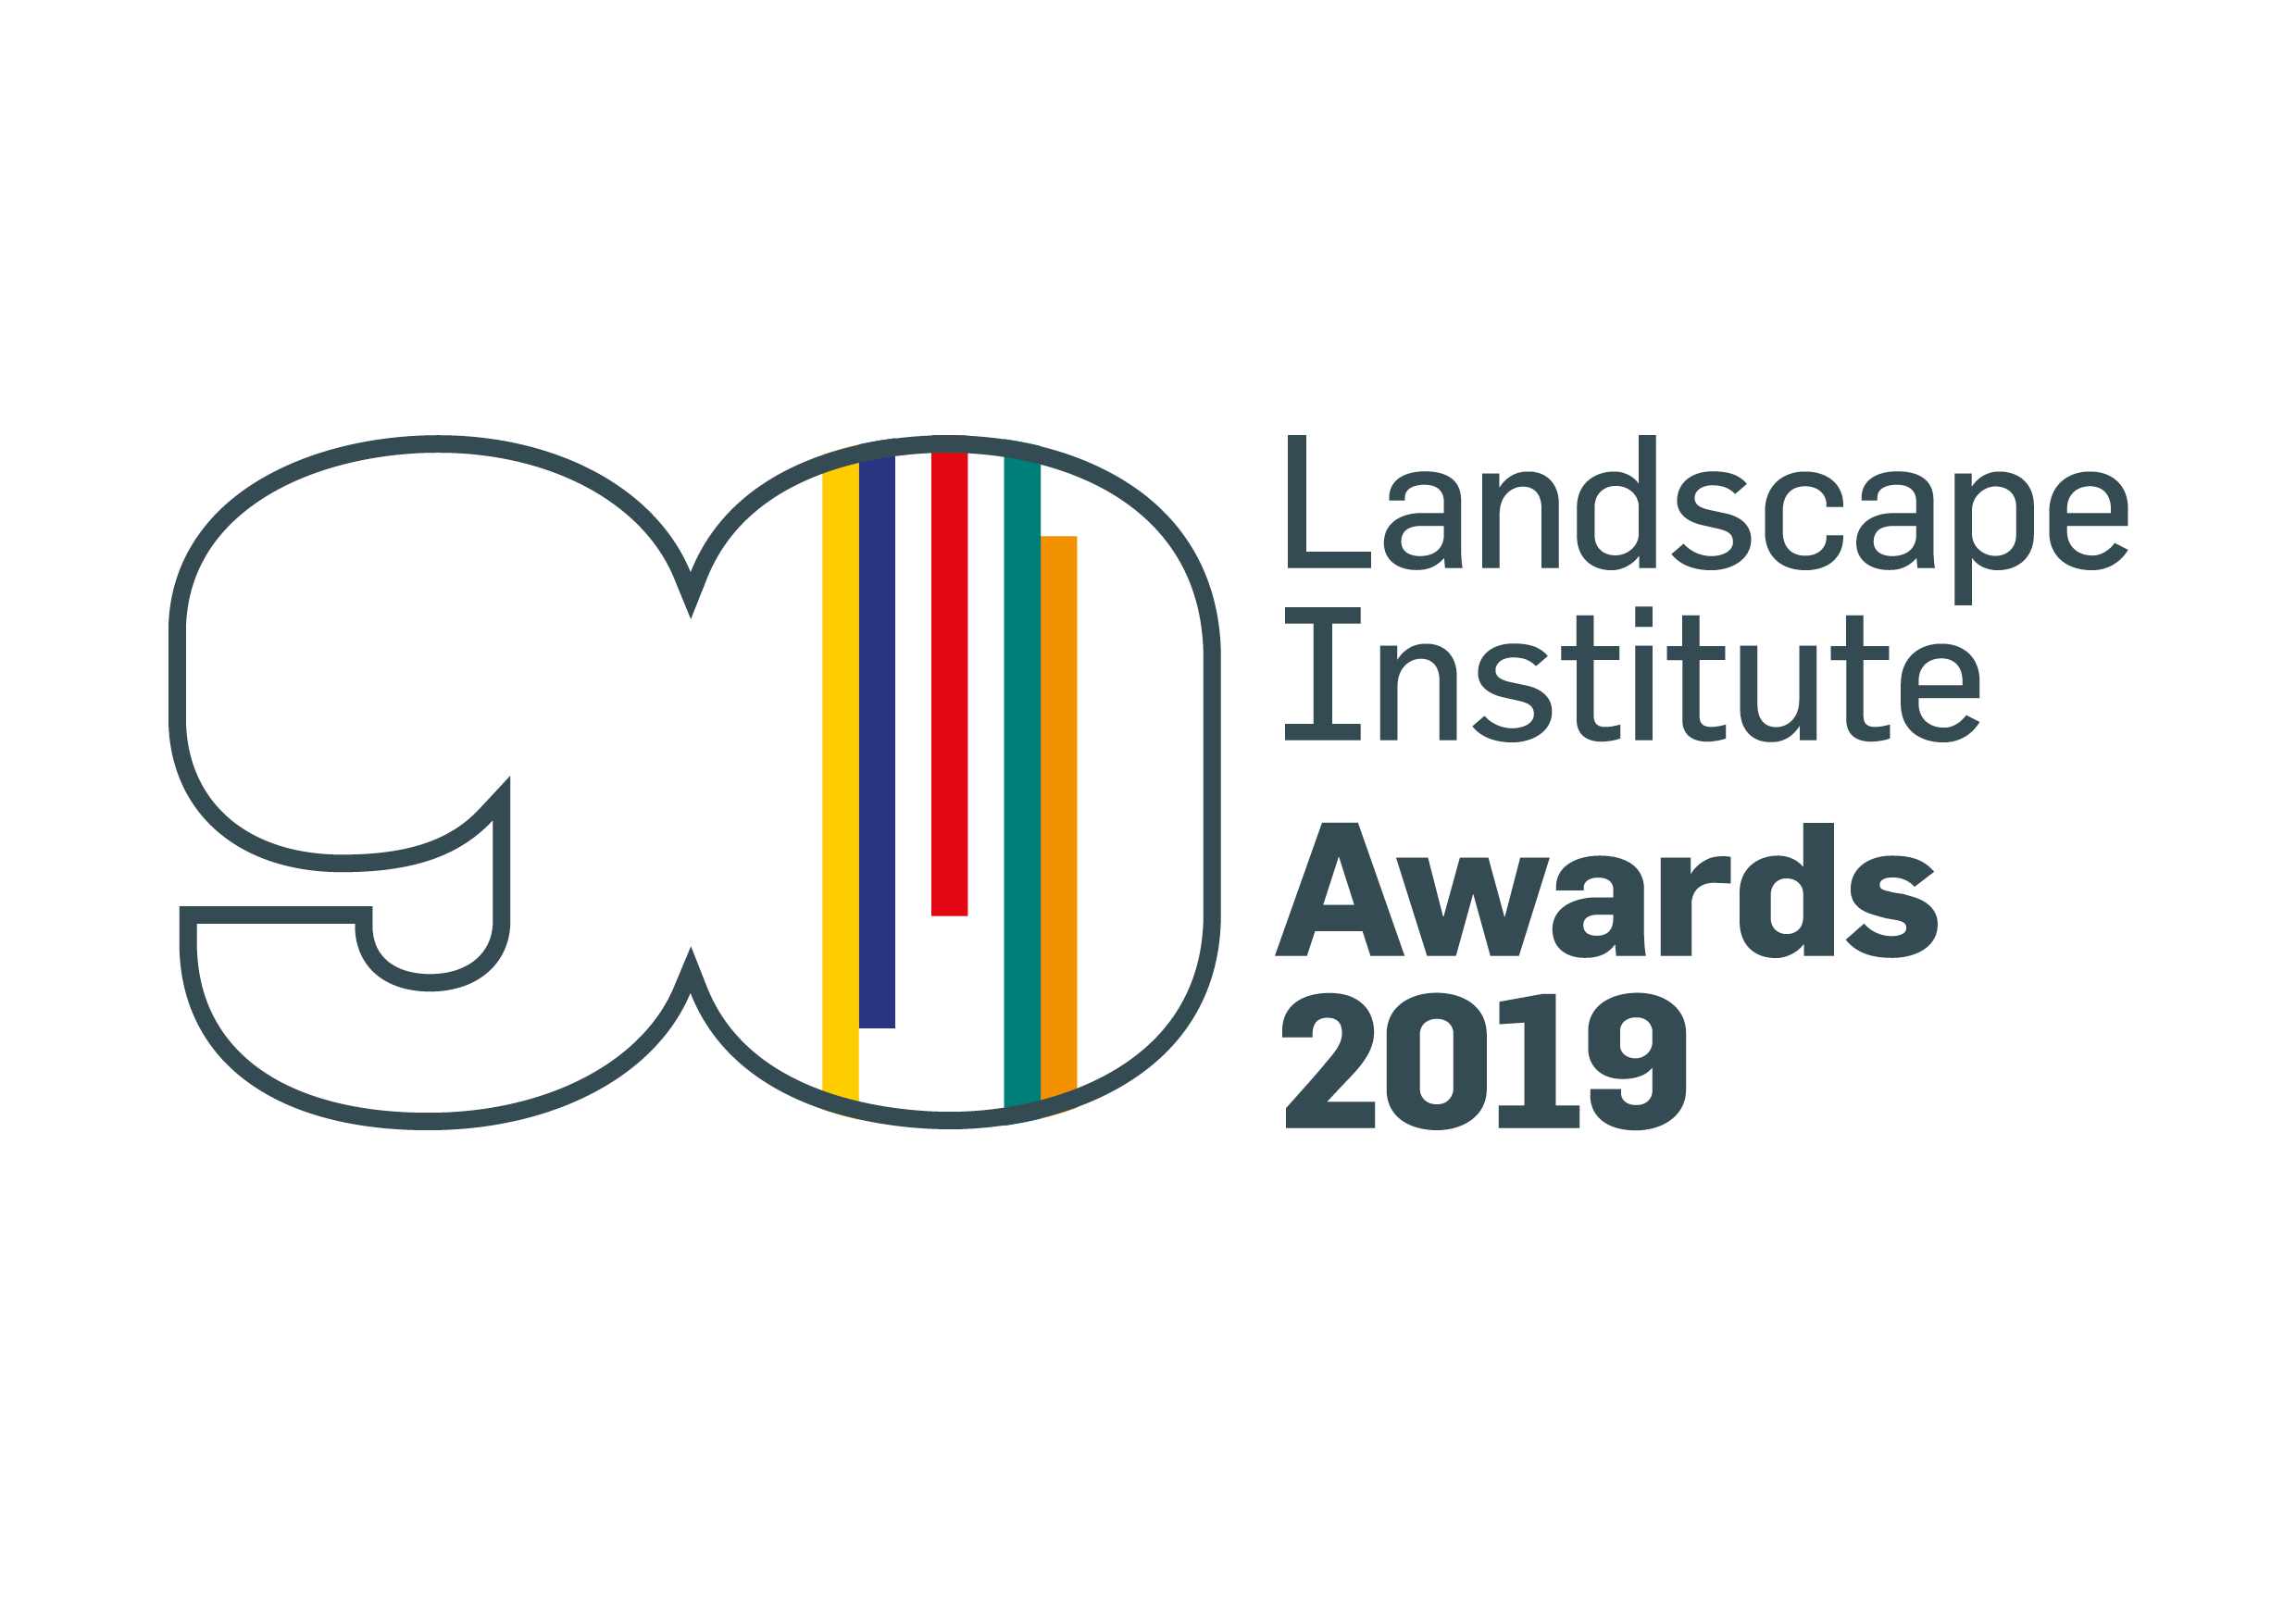 Enter the LI Awards 2019!